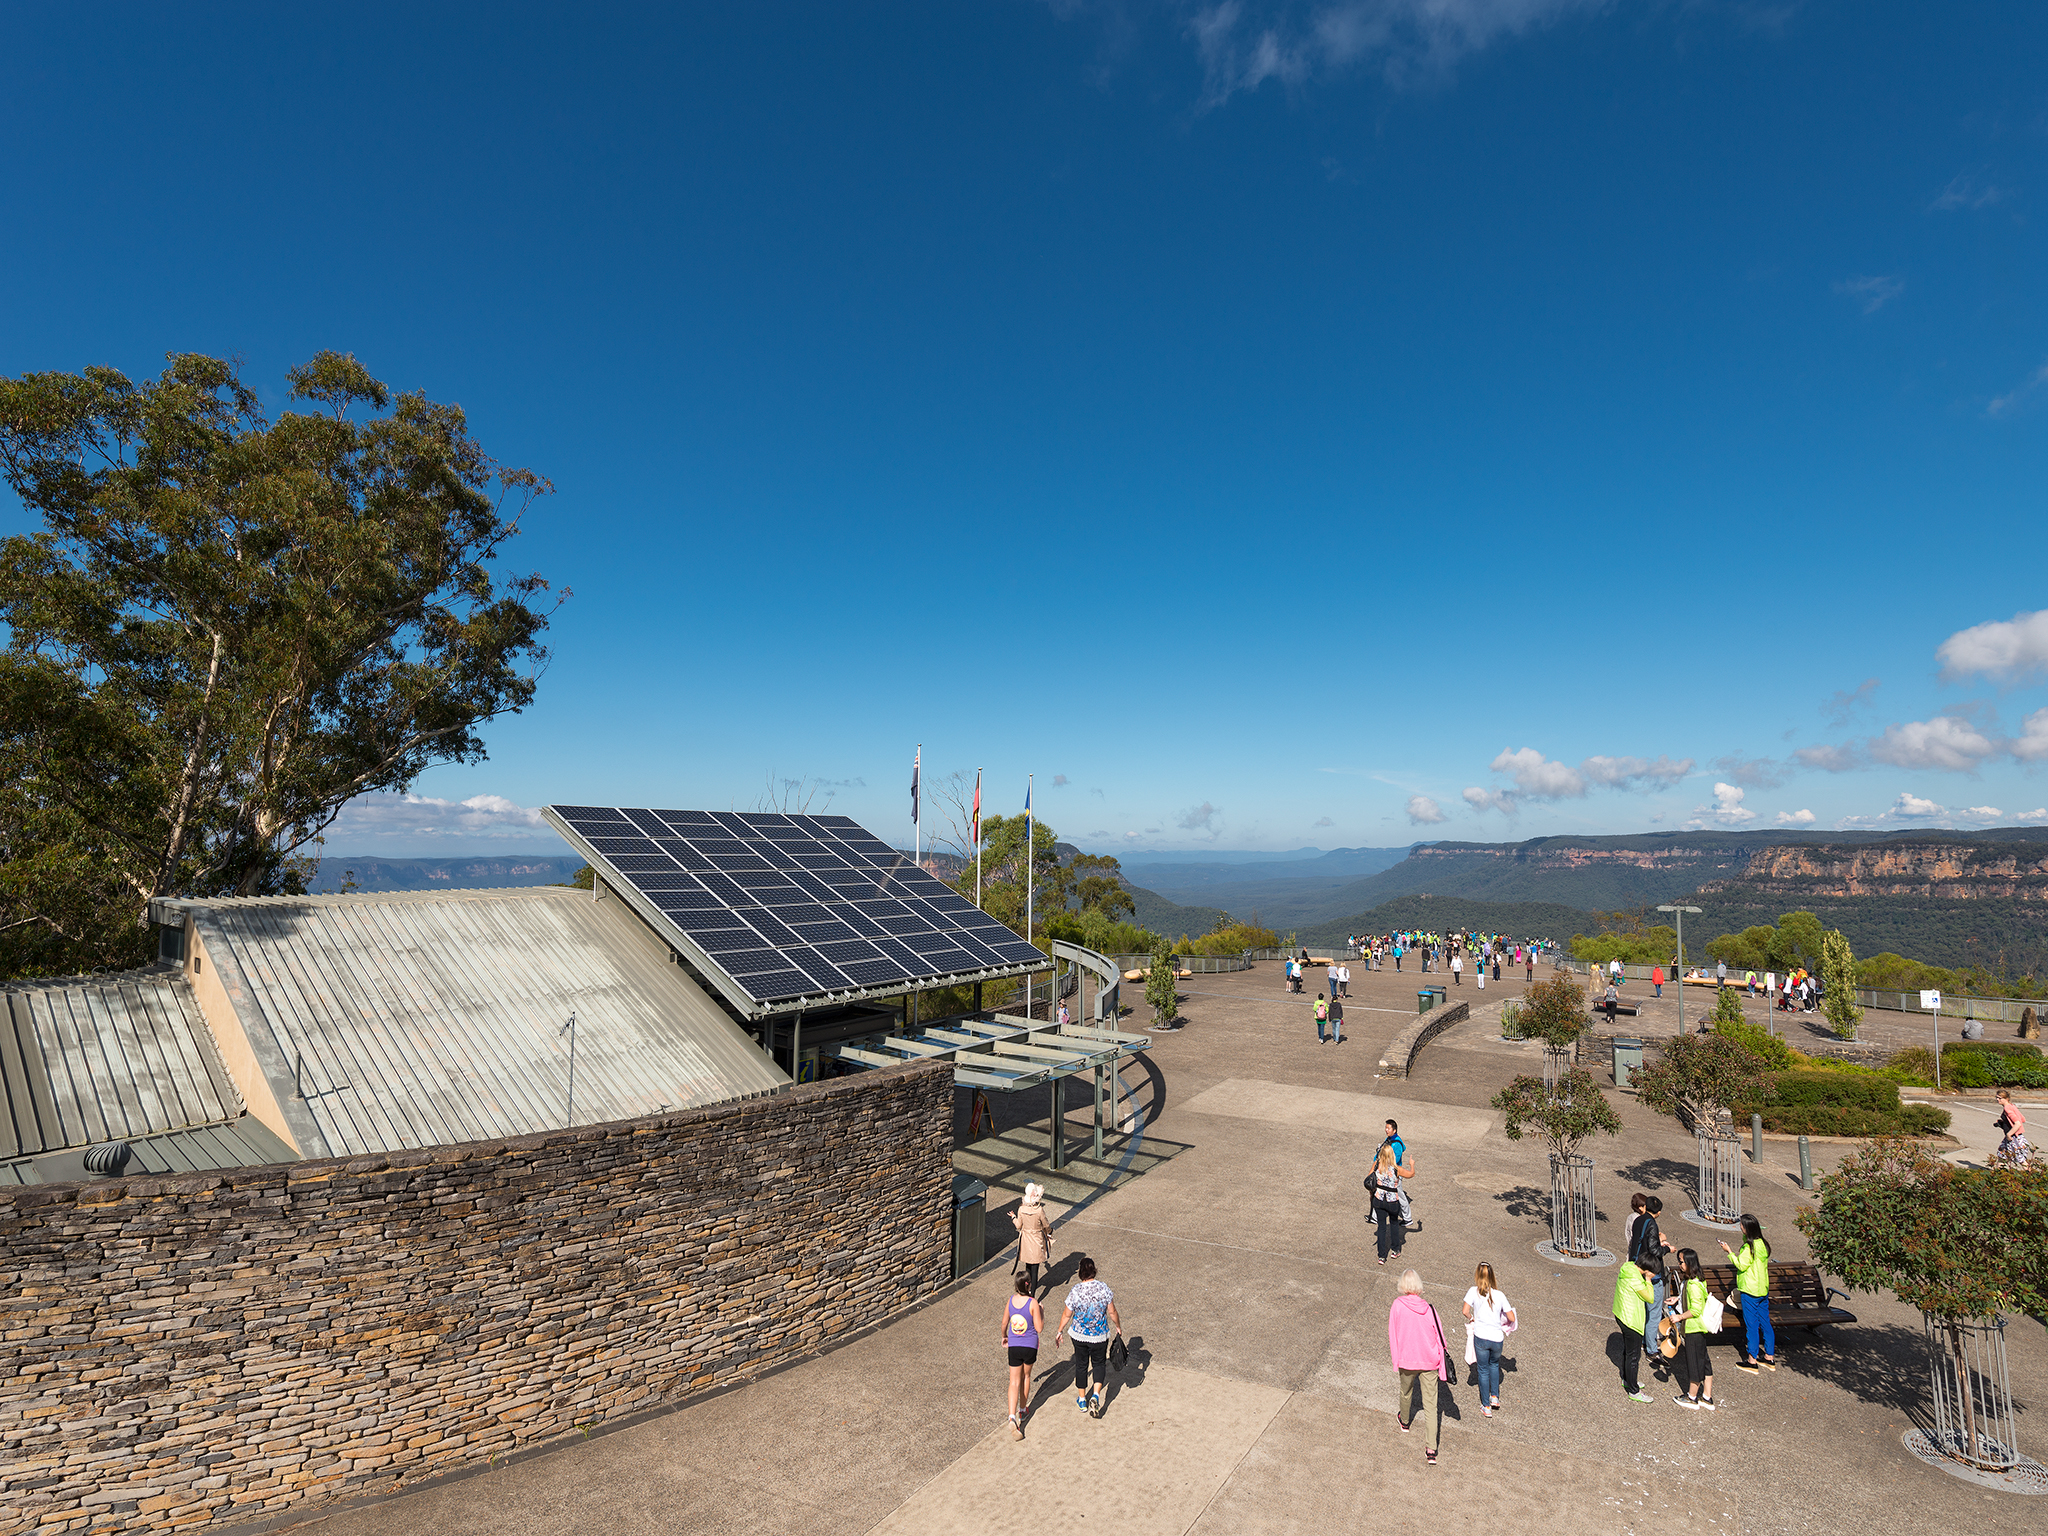 Solar panels on VIC at Echo Point